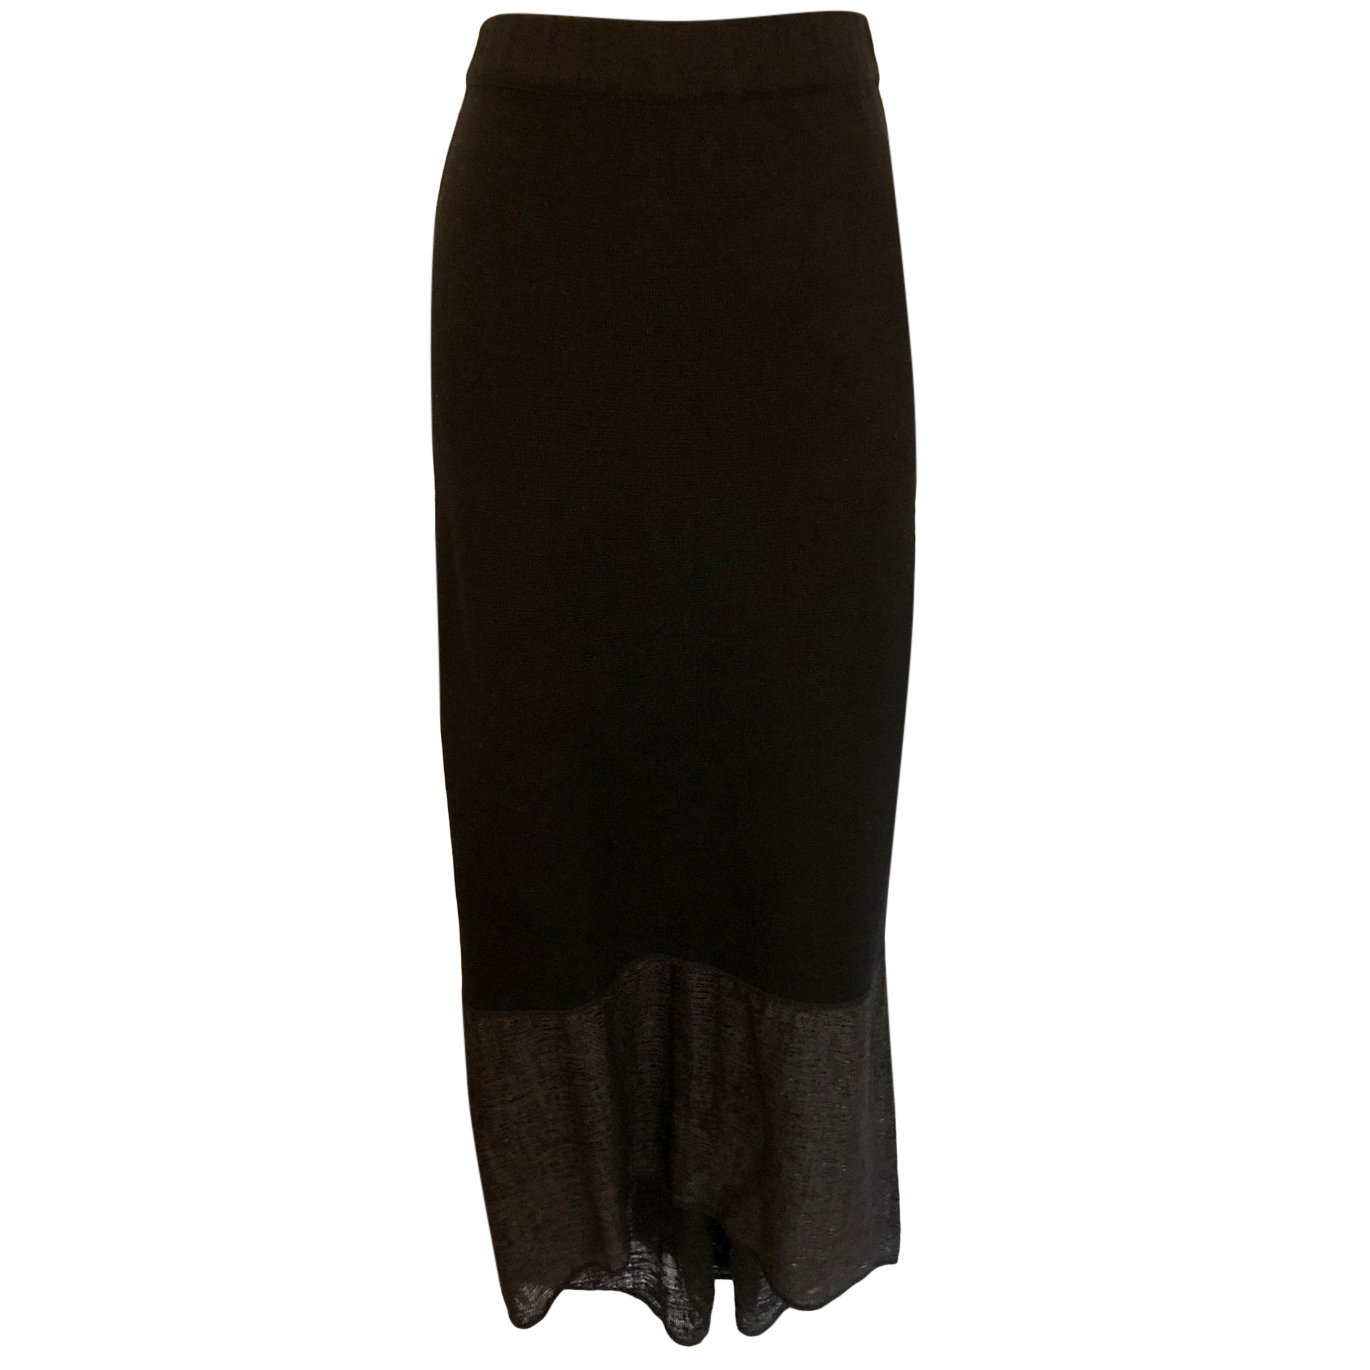 Annette Gortz Black Semi Sheer Knit Long Skirt